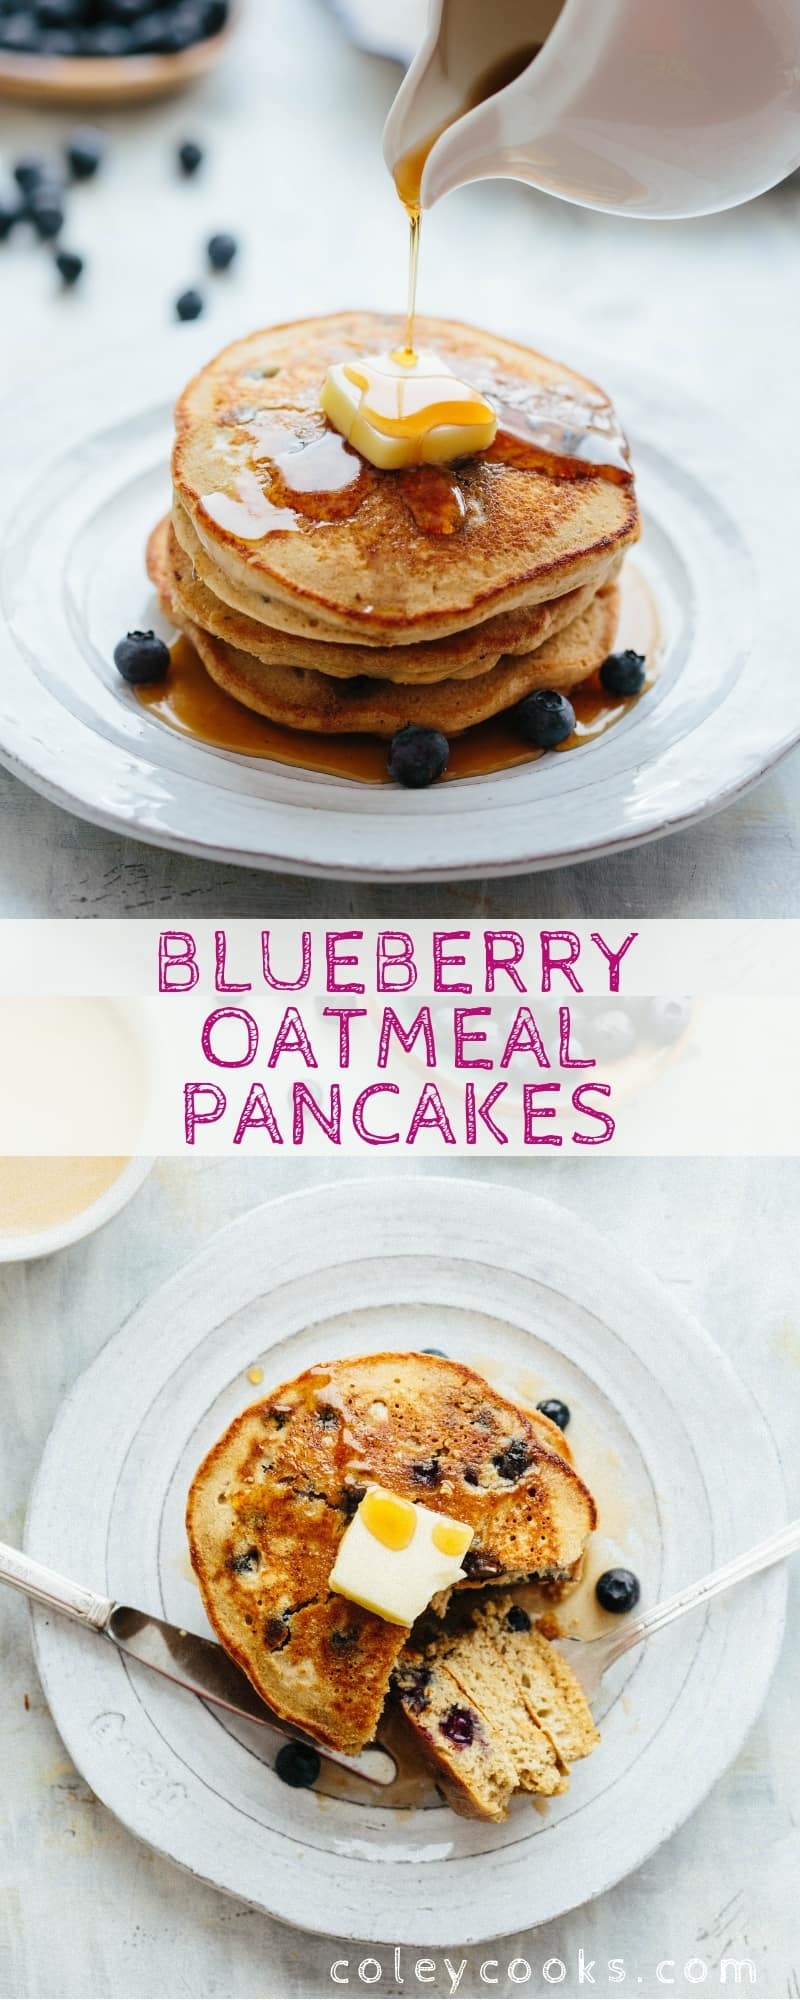 Pinterest collage of blueberry oatmeal pancakes on white plates.